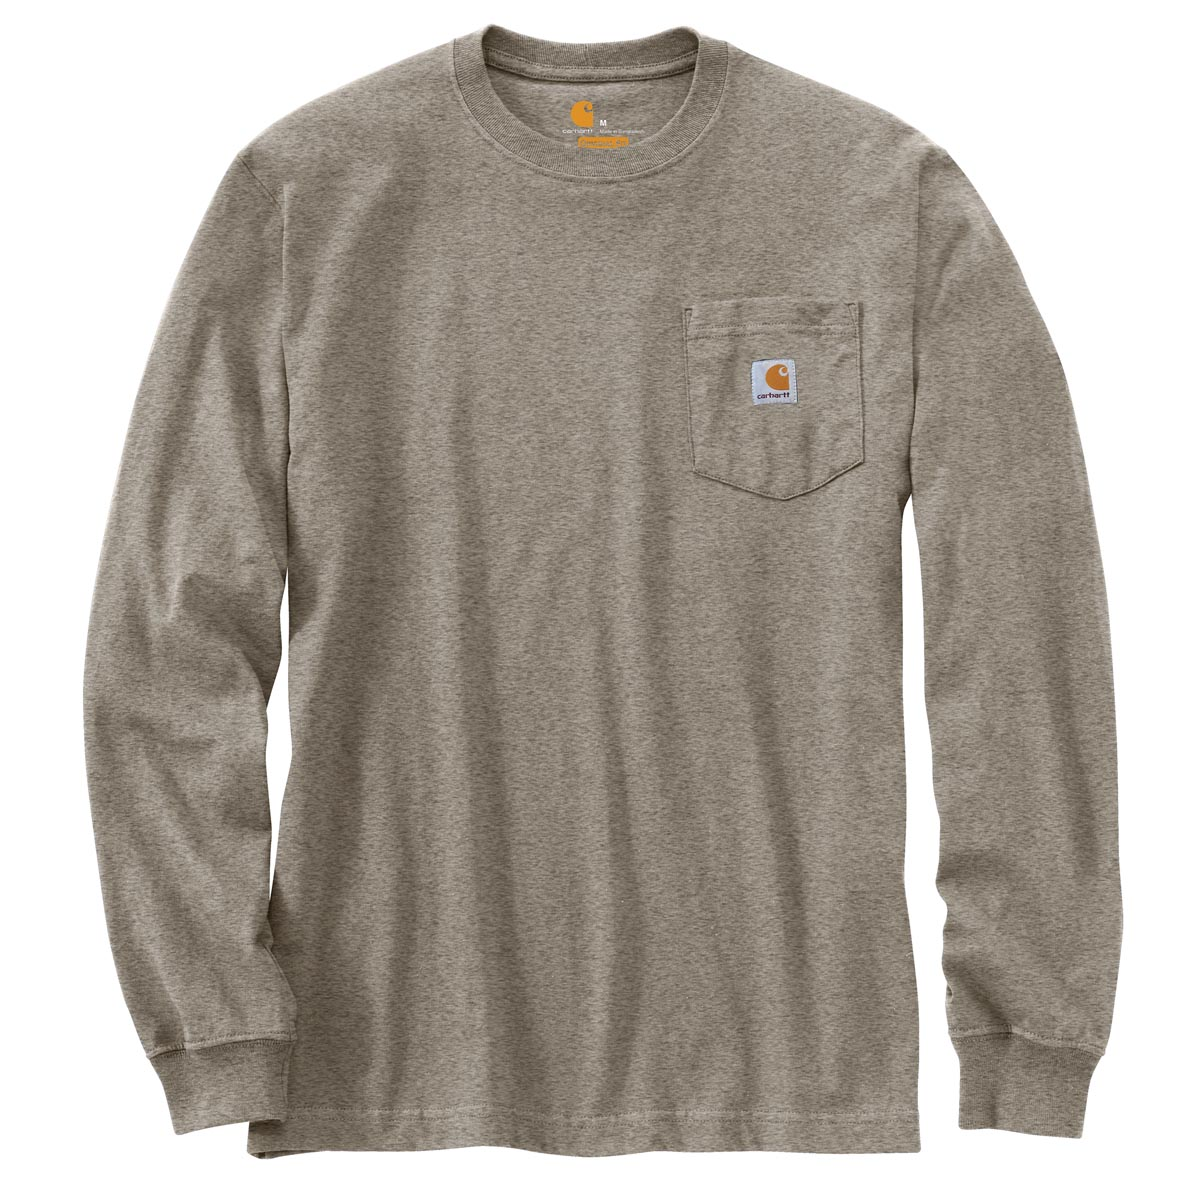 8171f412d Price search results for Carhartt Mens Maddock Graphic Rugged Outdoors  Branded C Pocket T Shirt